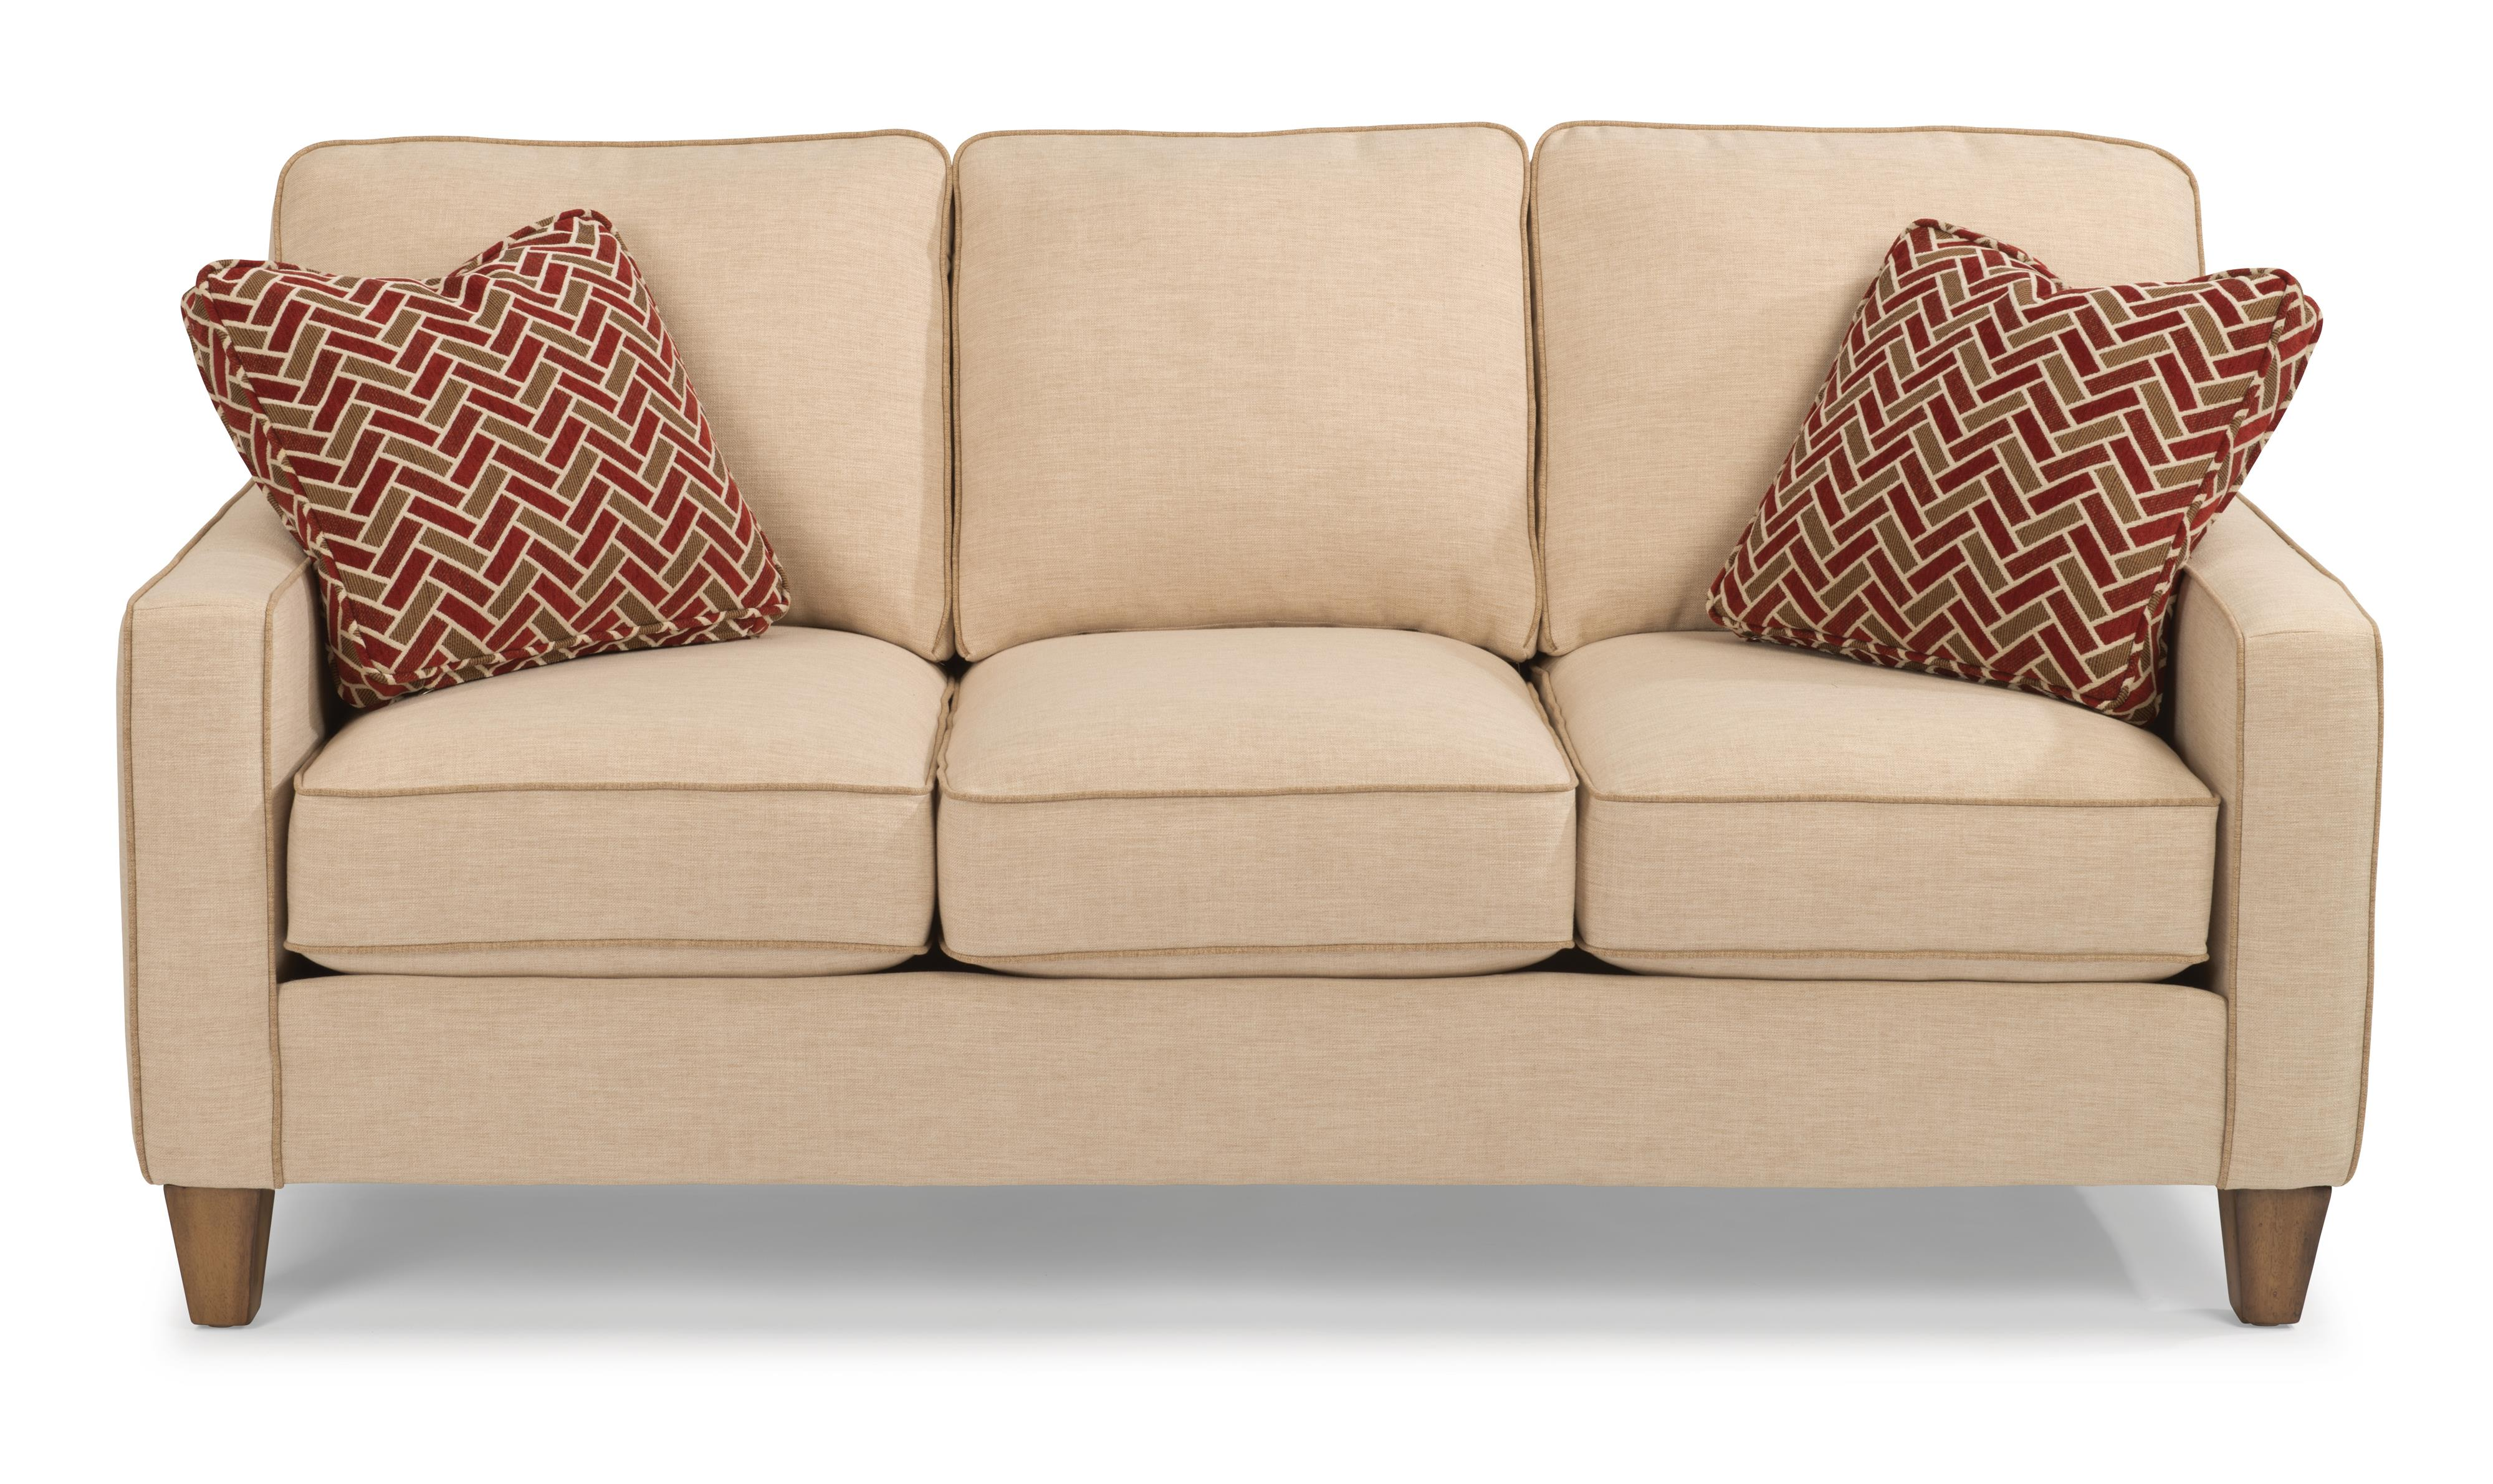 Flexsteel MacLeran Stationary Sofa - Item Number: 5720-30-010-11